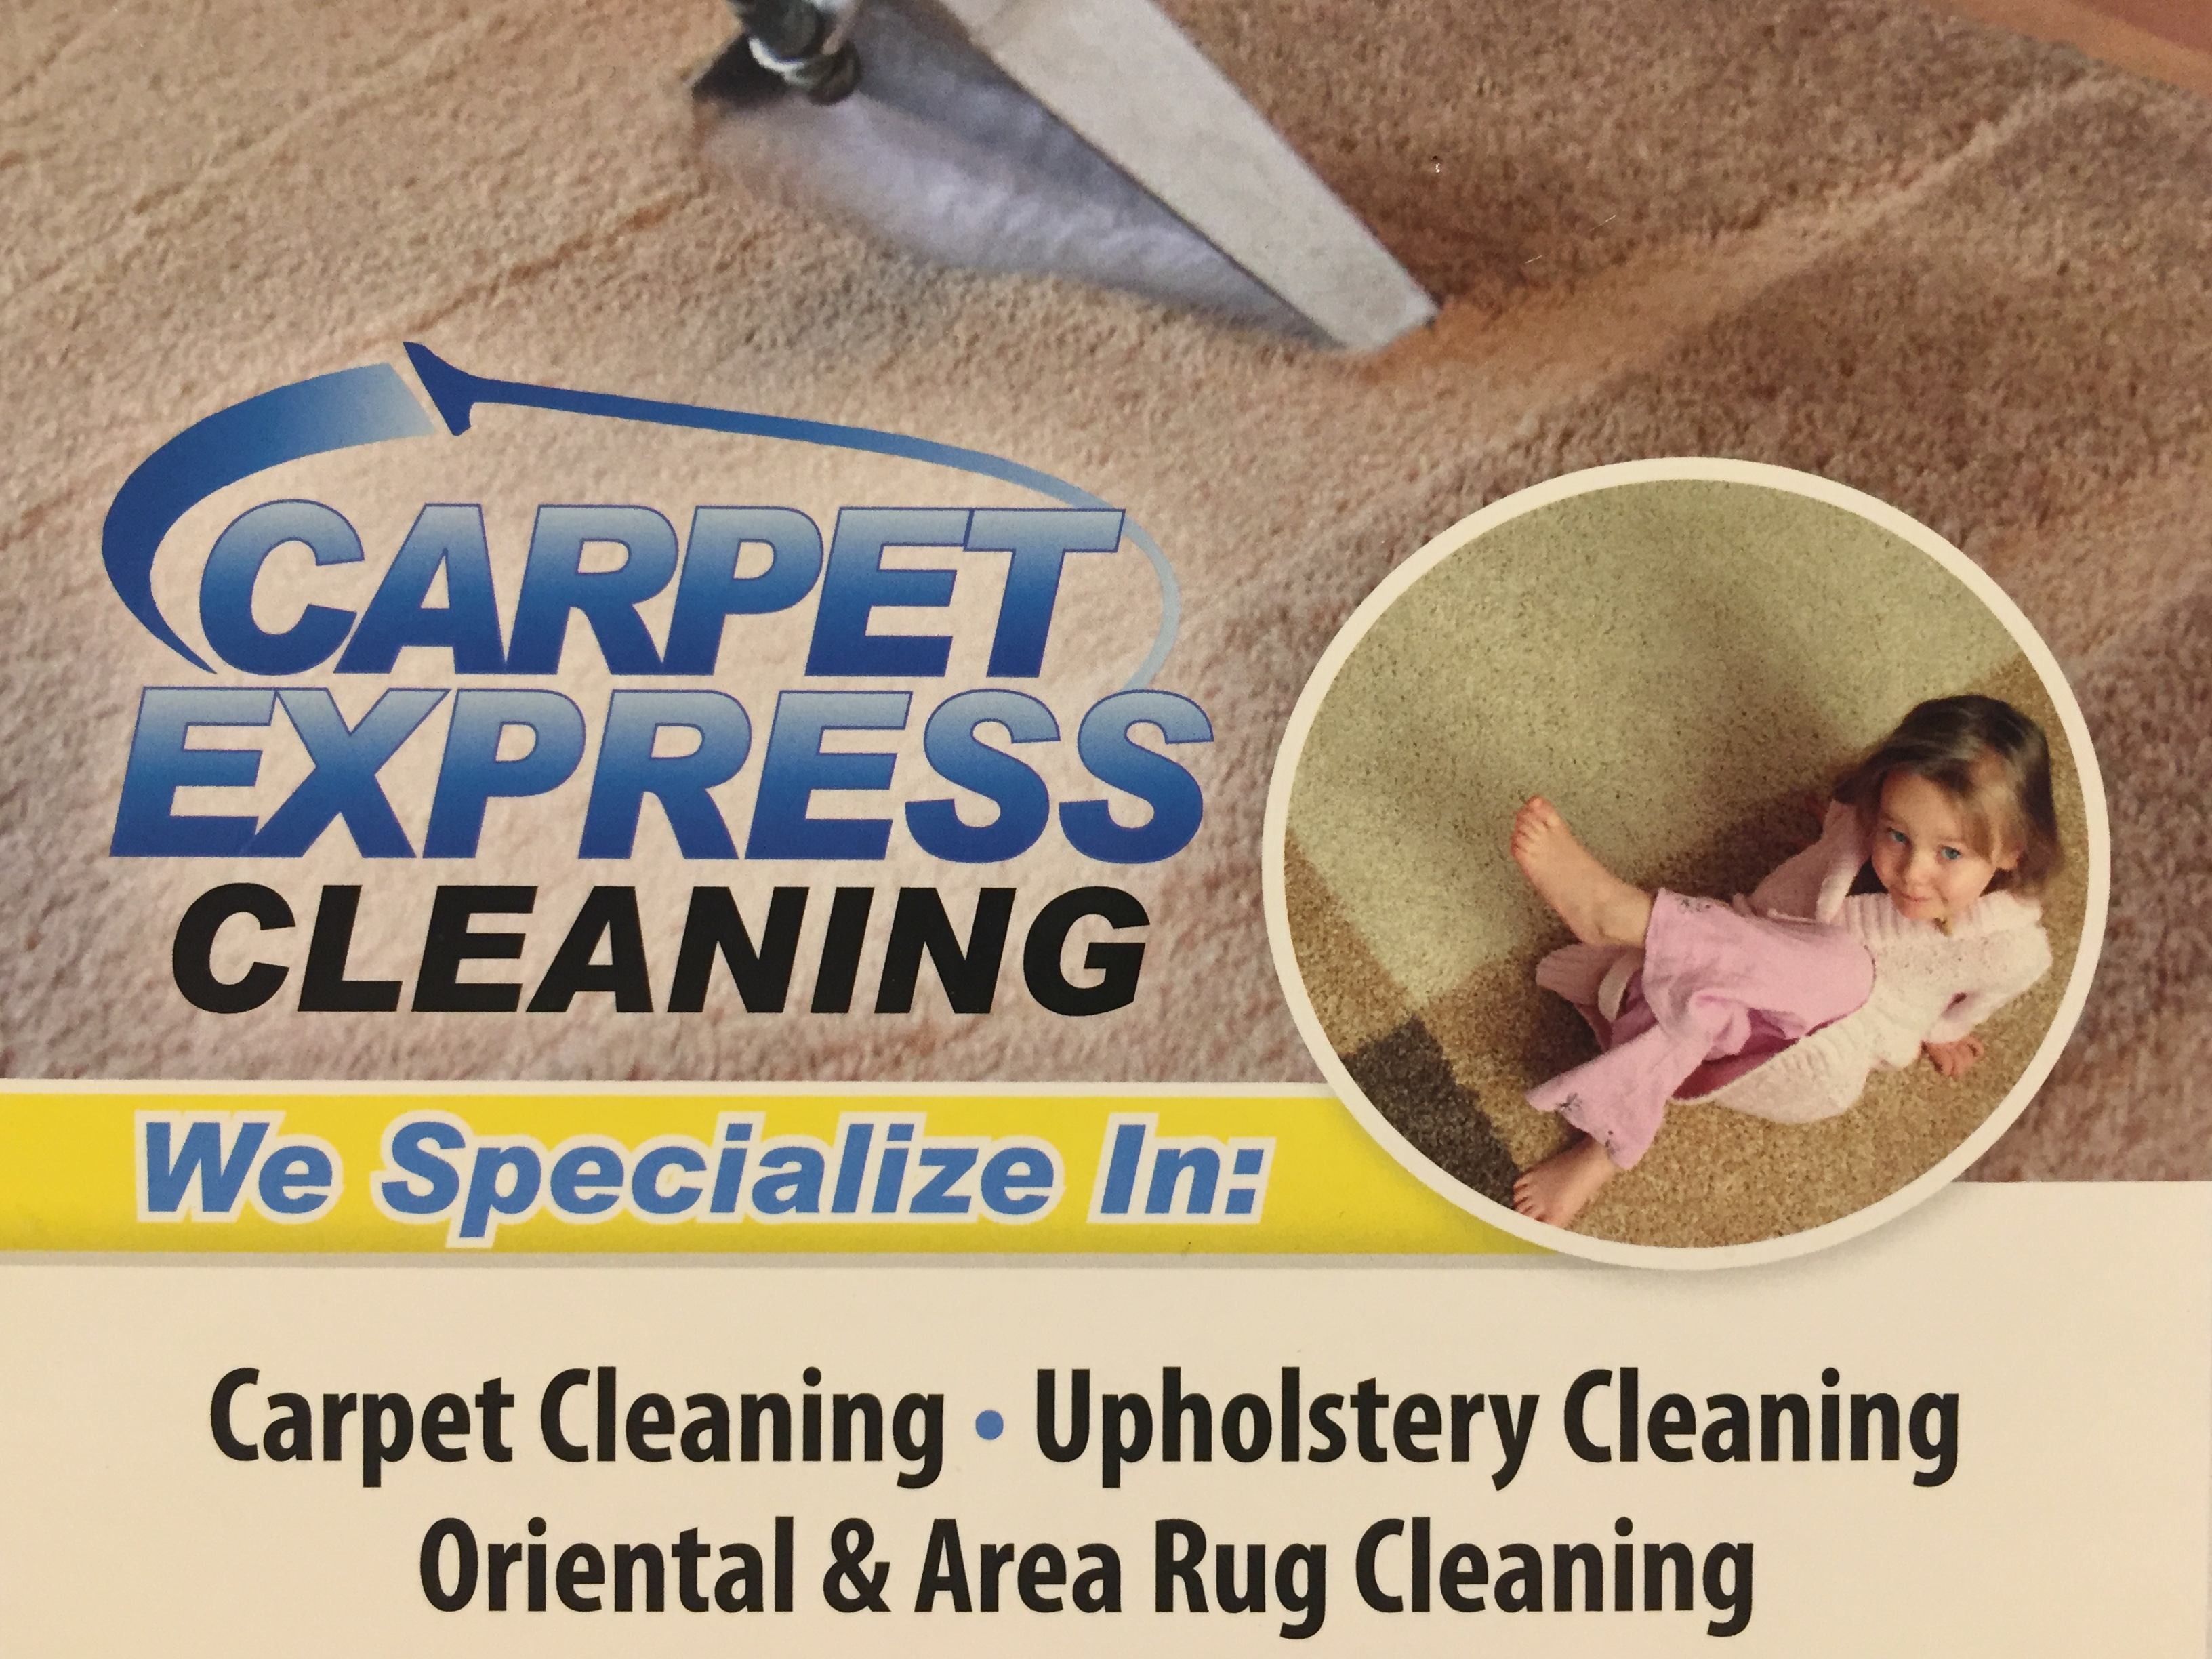 Carpet Express Cleaning